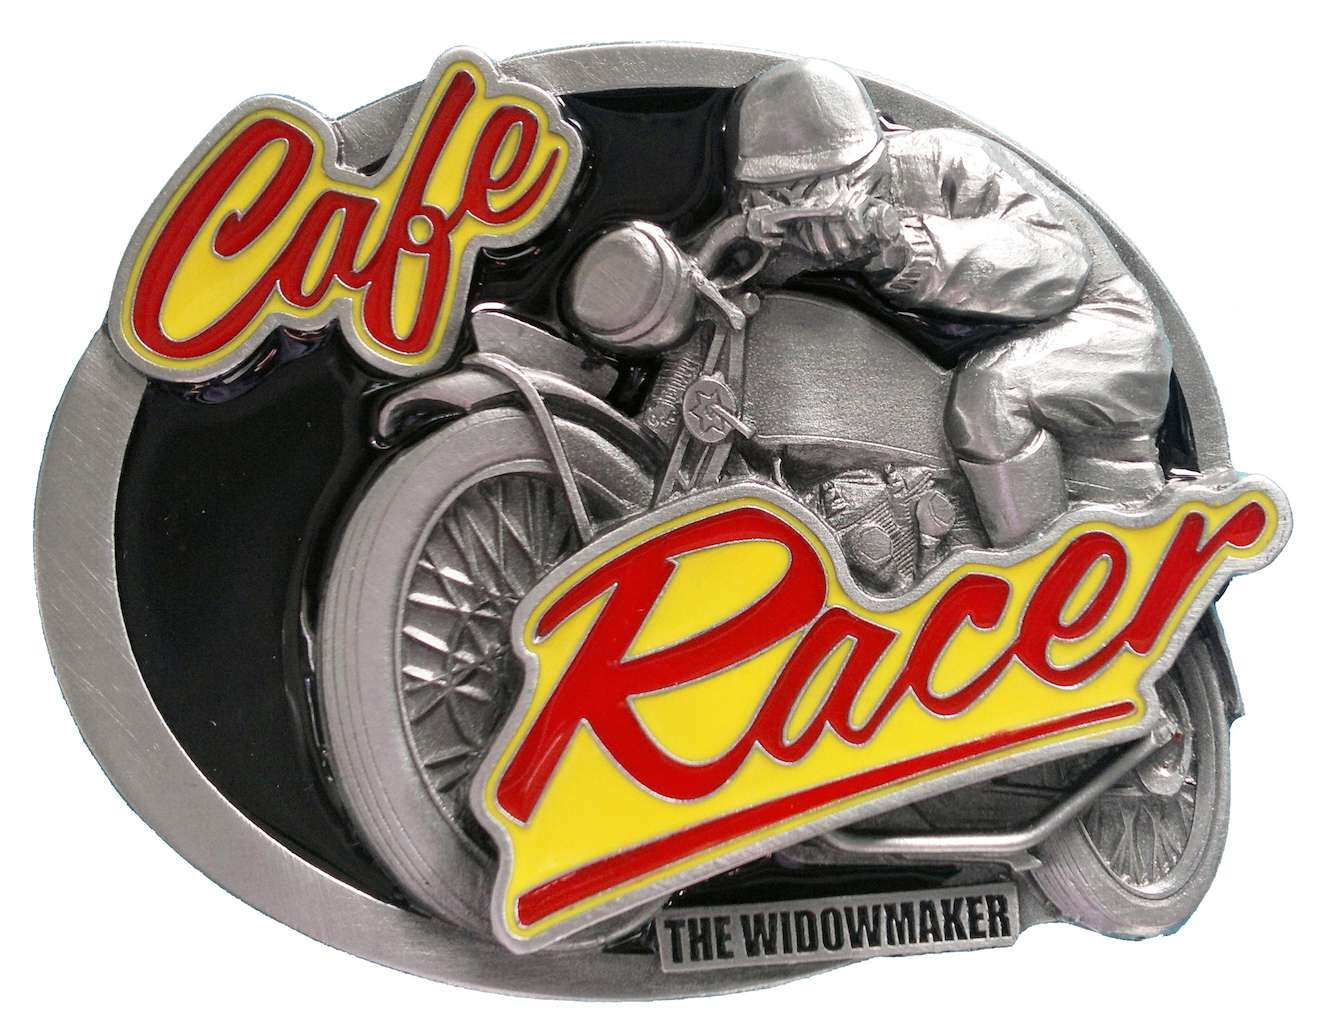 Cafe Racer Vintage Biker Belt Buckle